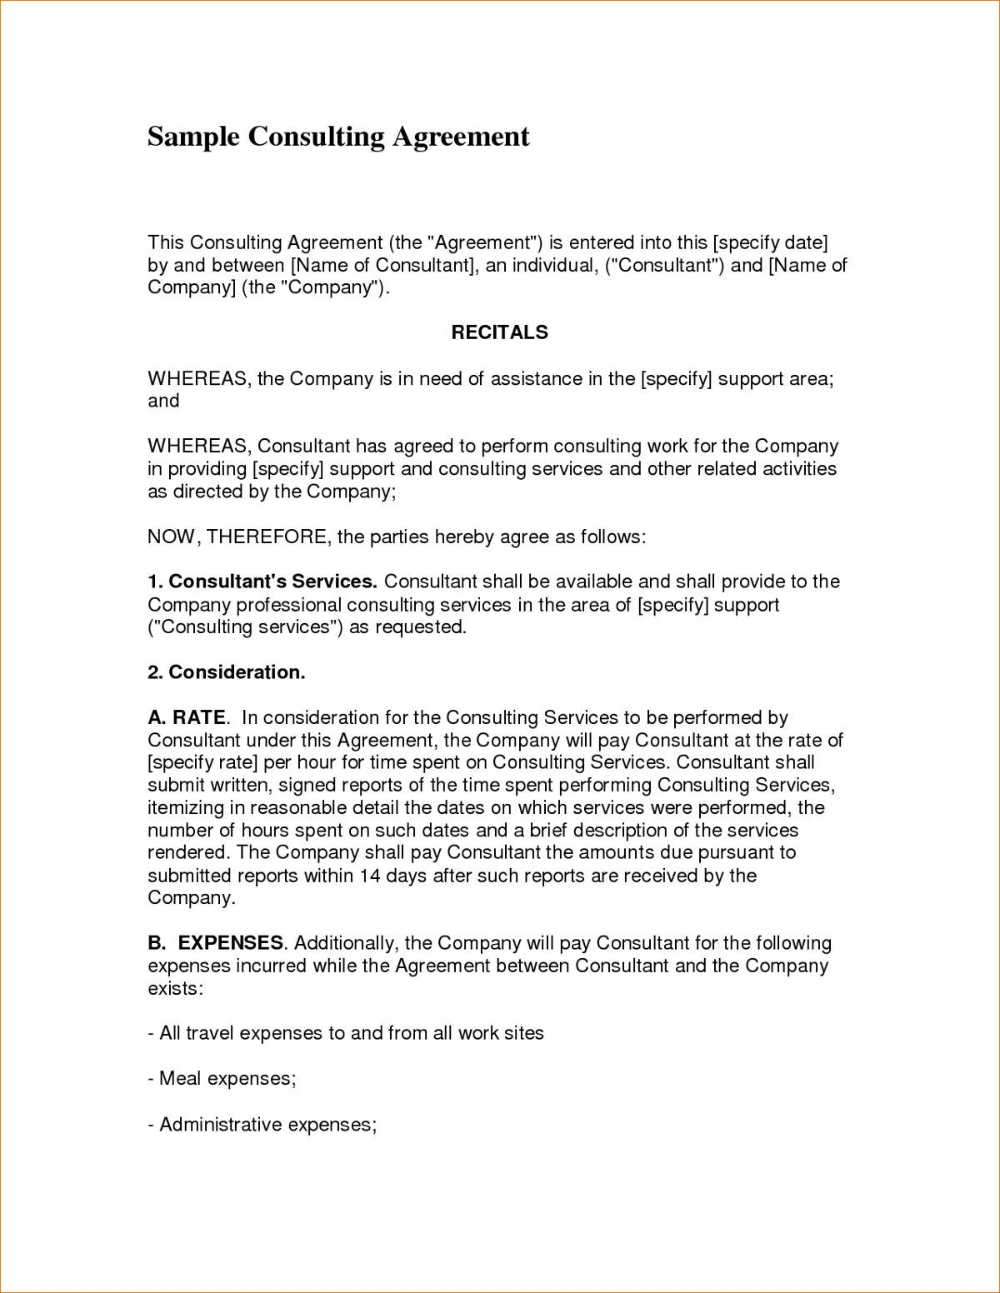 Simple Consulting Agreement Sample Document Letter Consultancy With Regard To Consulting Service Agreeme In 2020 Contract Template Marketing Consultant Report Template